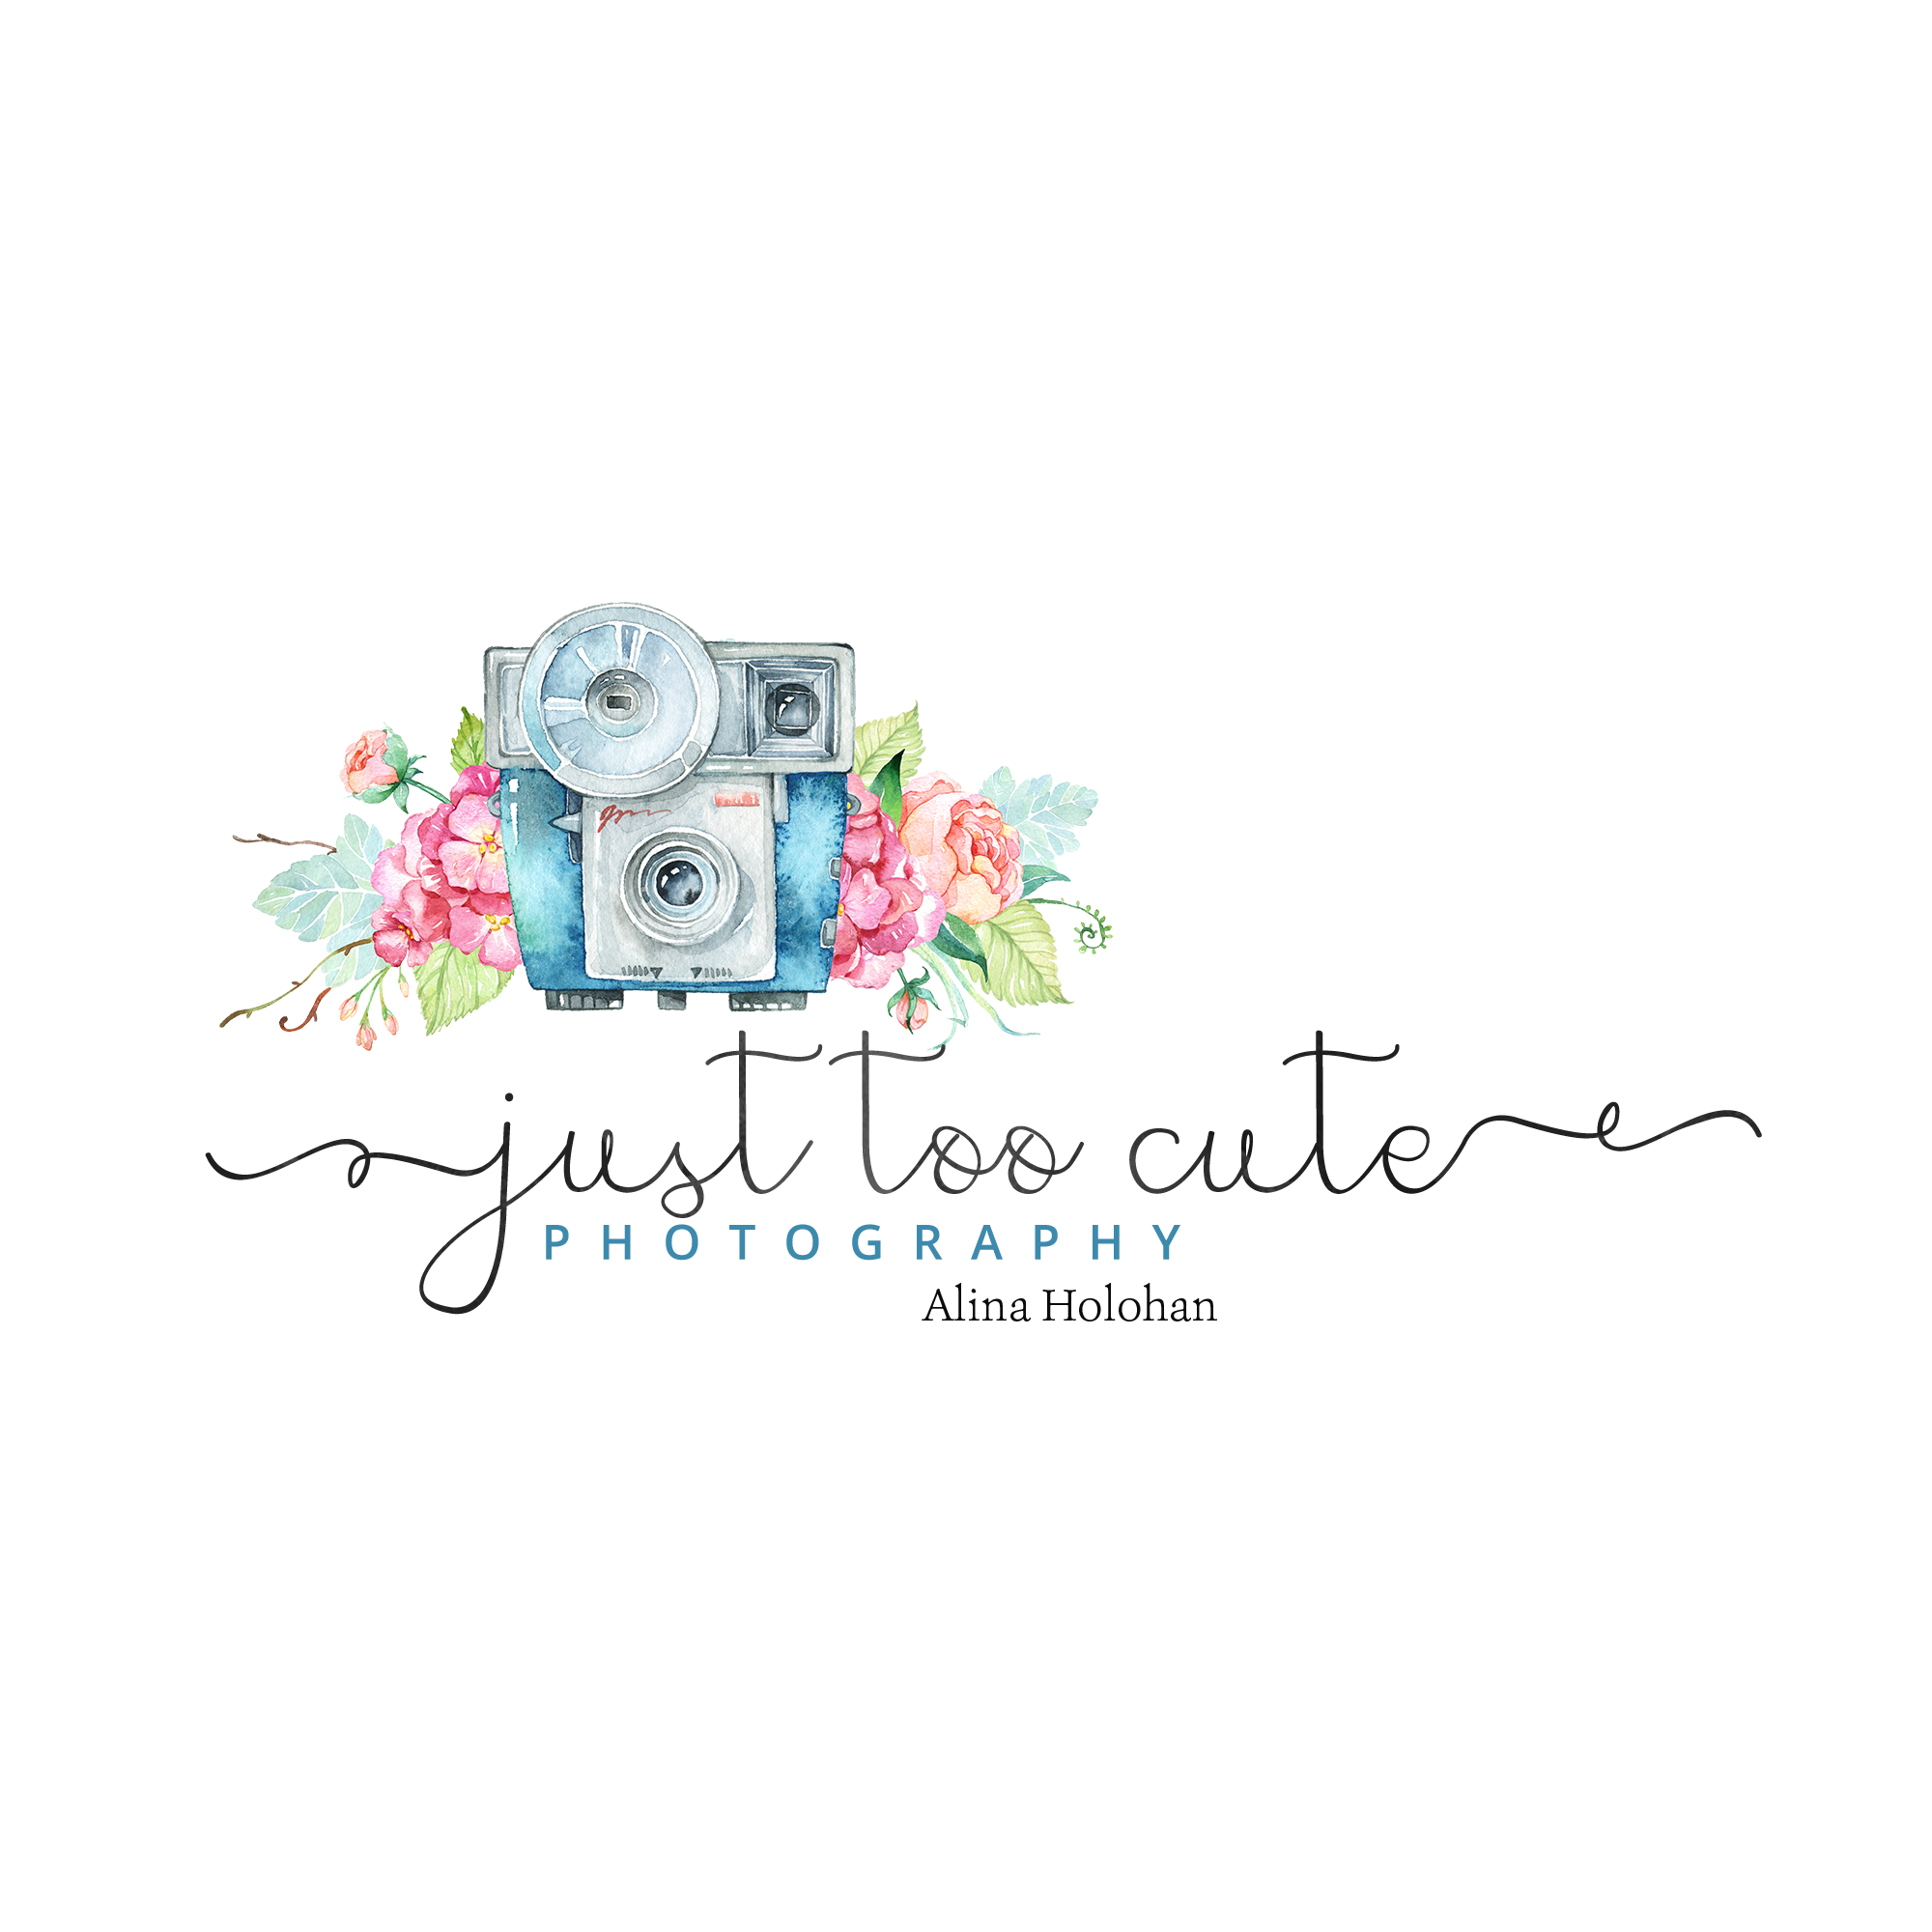 Just too cute photography, Graphic design, graphic designer, web design, web designer, picture editor, freelance graphic designer, website designer, website creator, design website, graphic design website, photo editor, personal branding, photo editing, professional photo editor